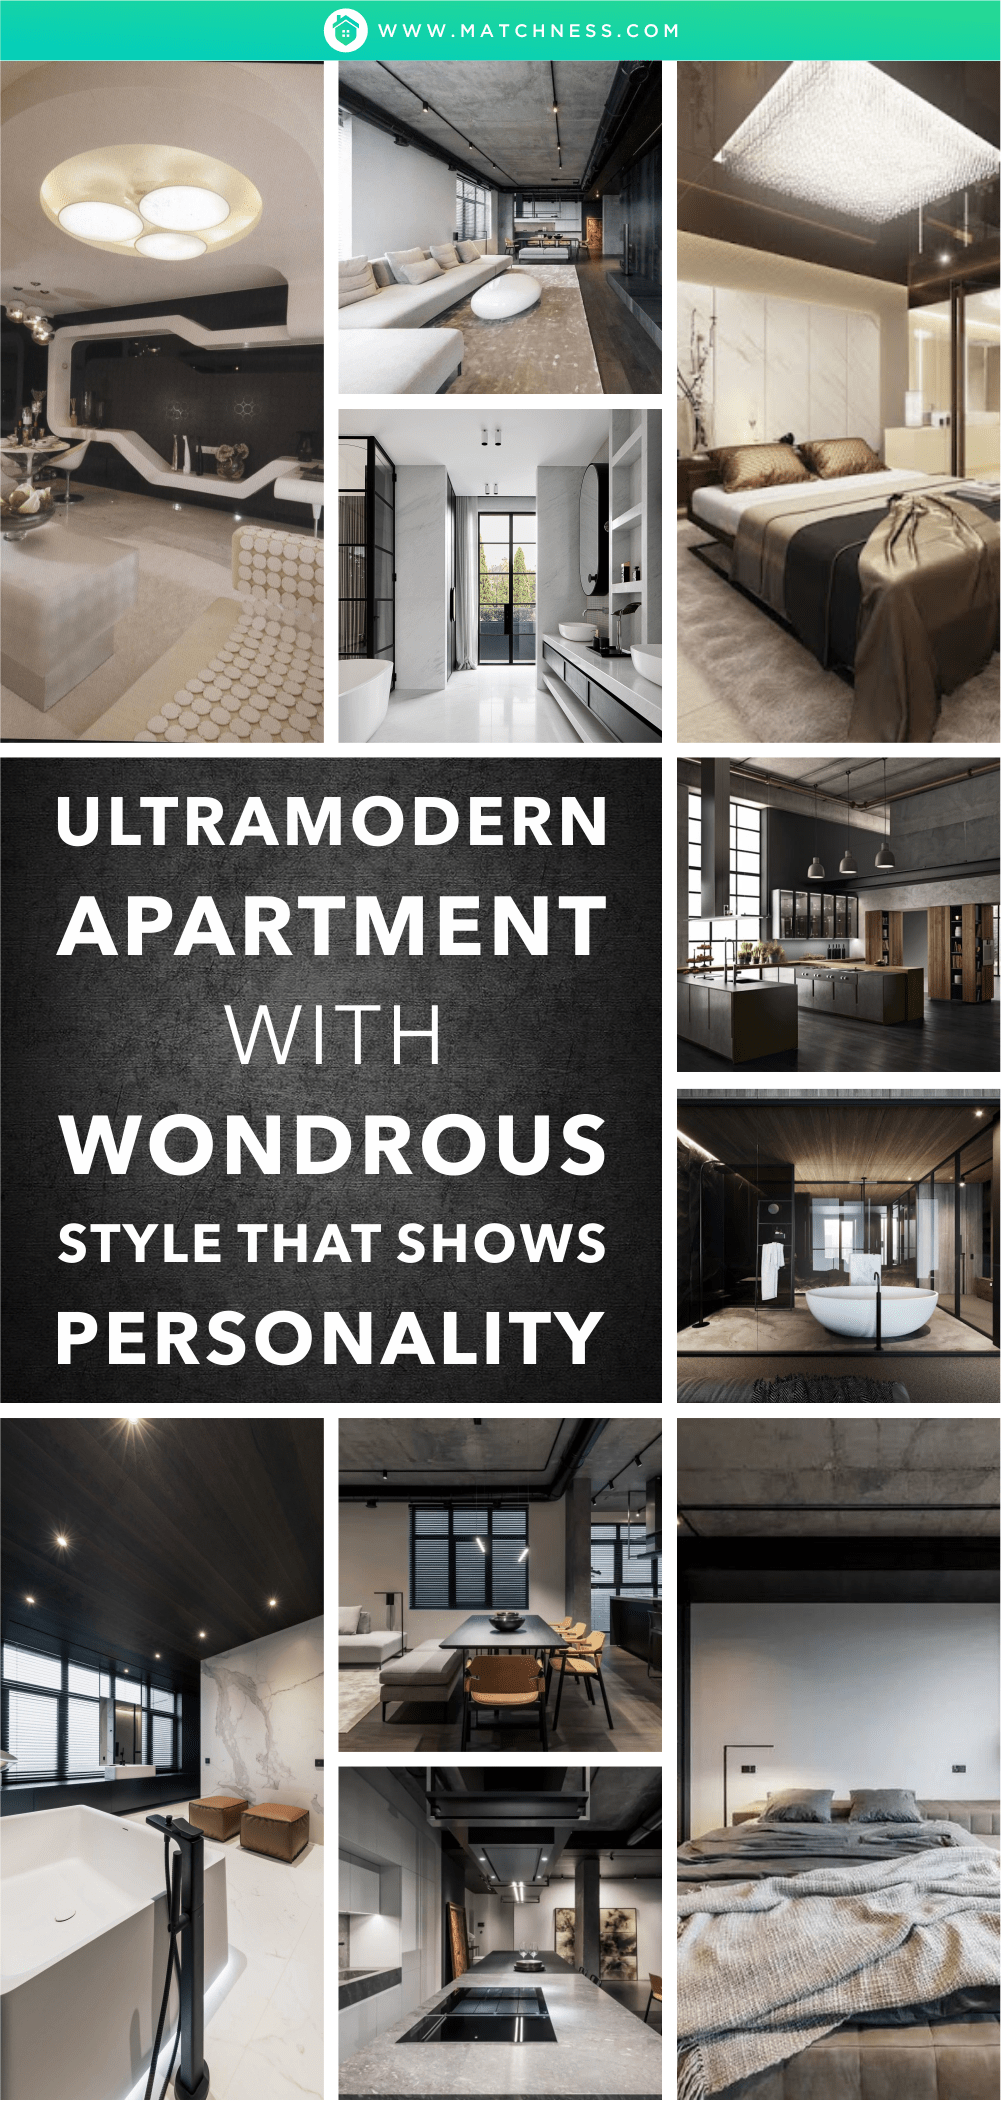 Ultramodern-apartment-with-wondrous-style-that-shows-personality-1